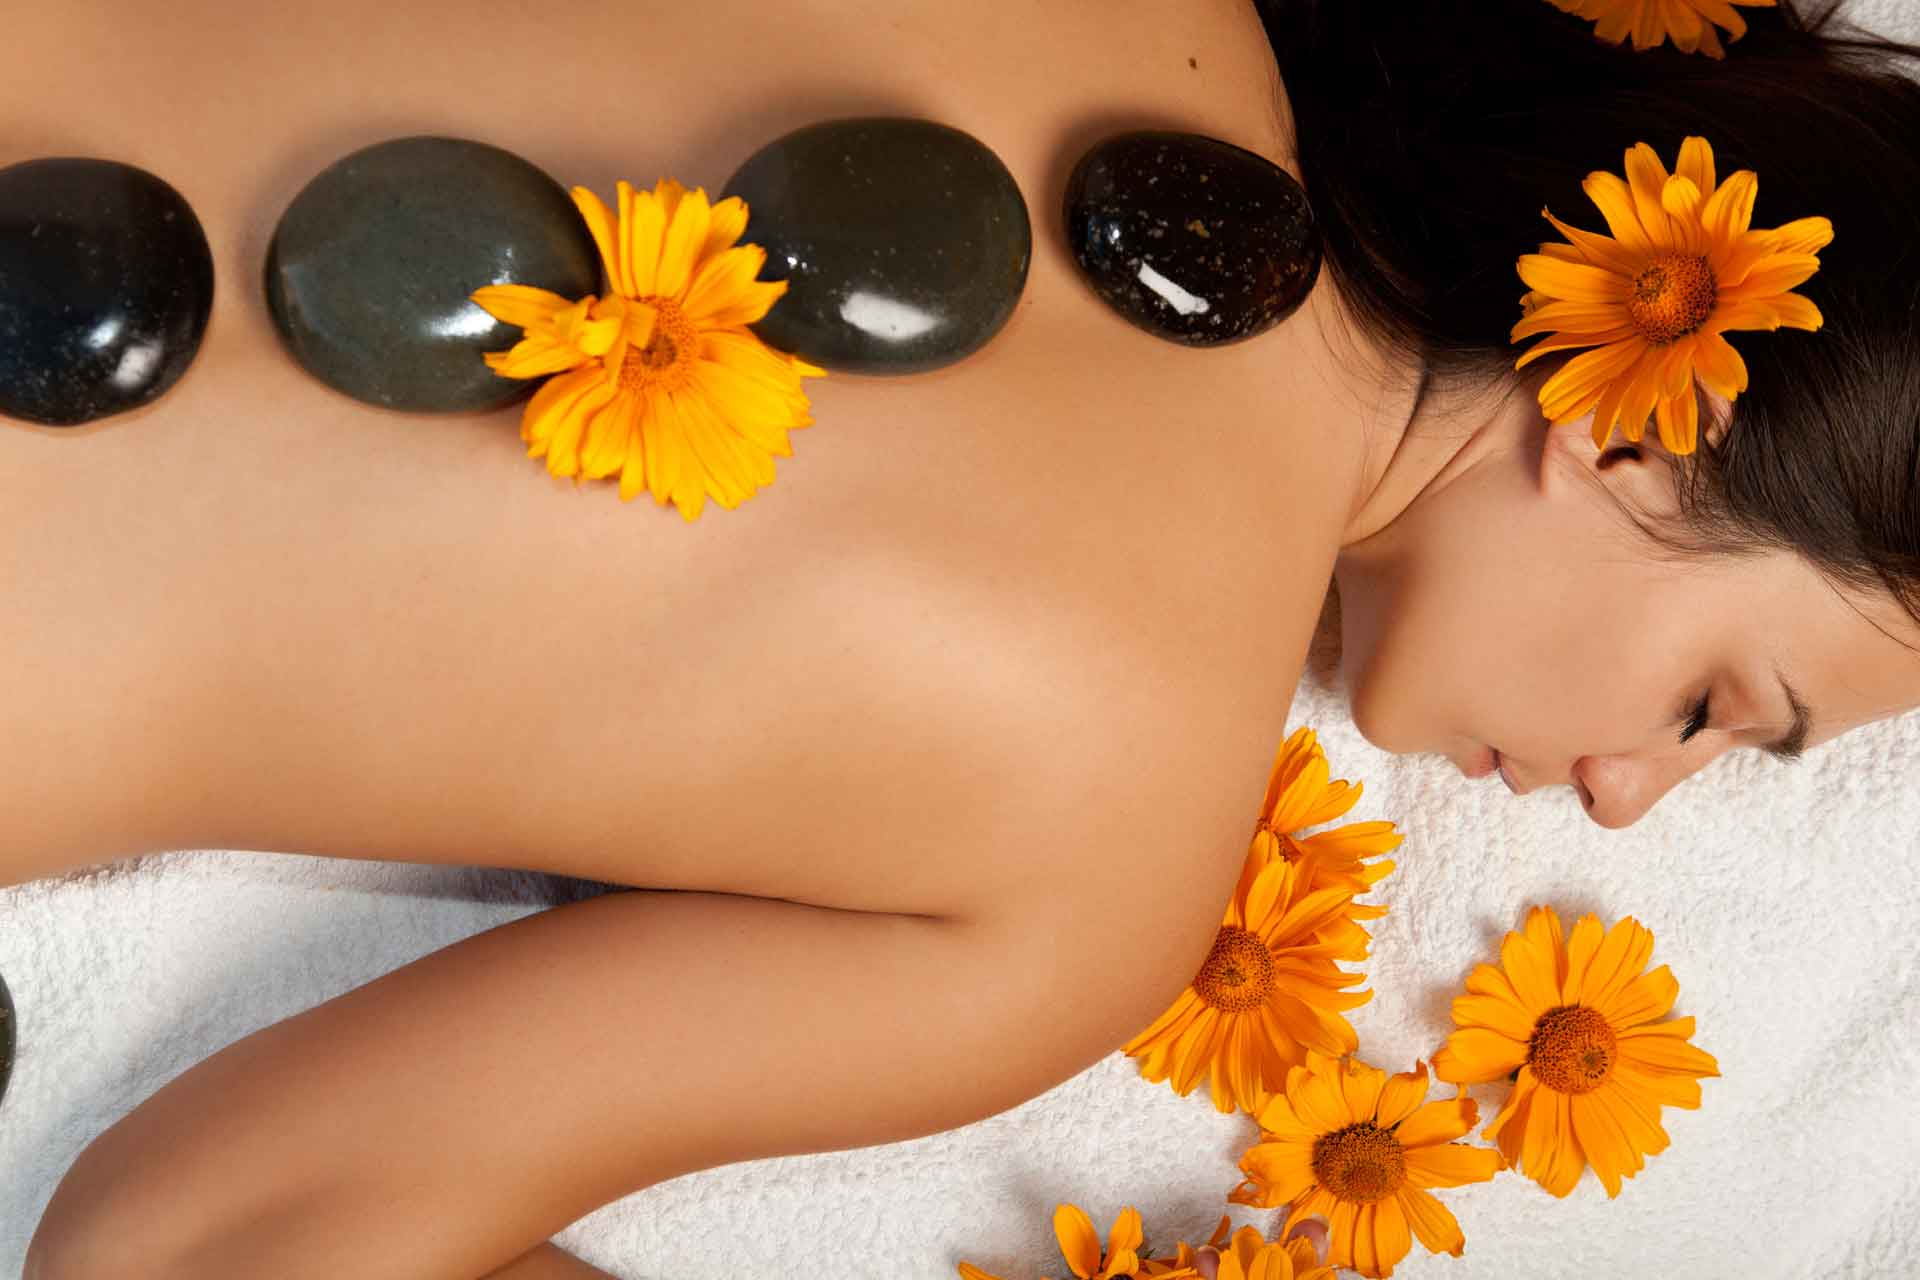 spa-hot-stone-massage.jpg